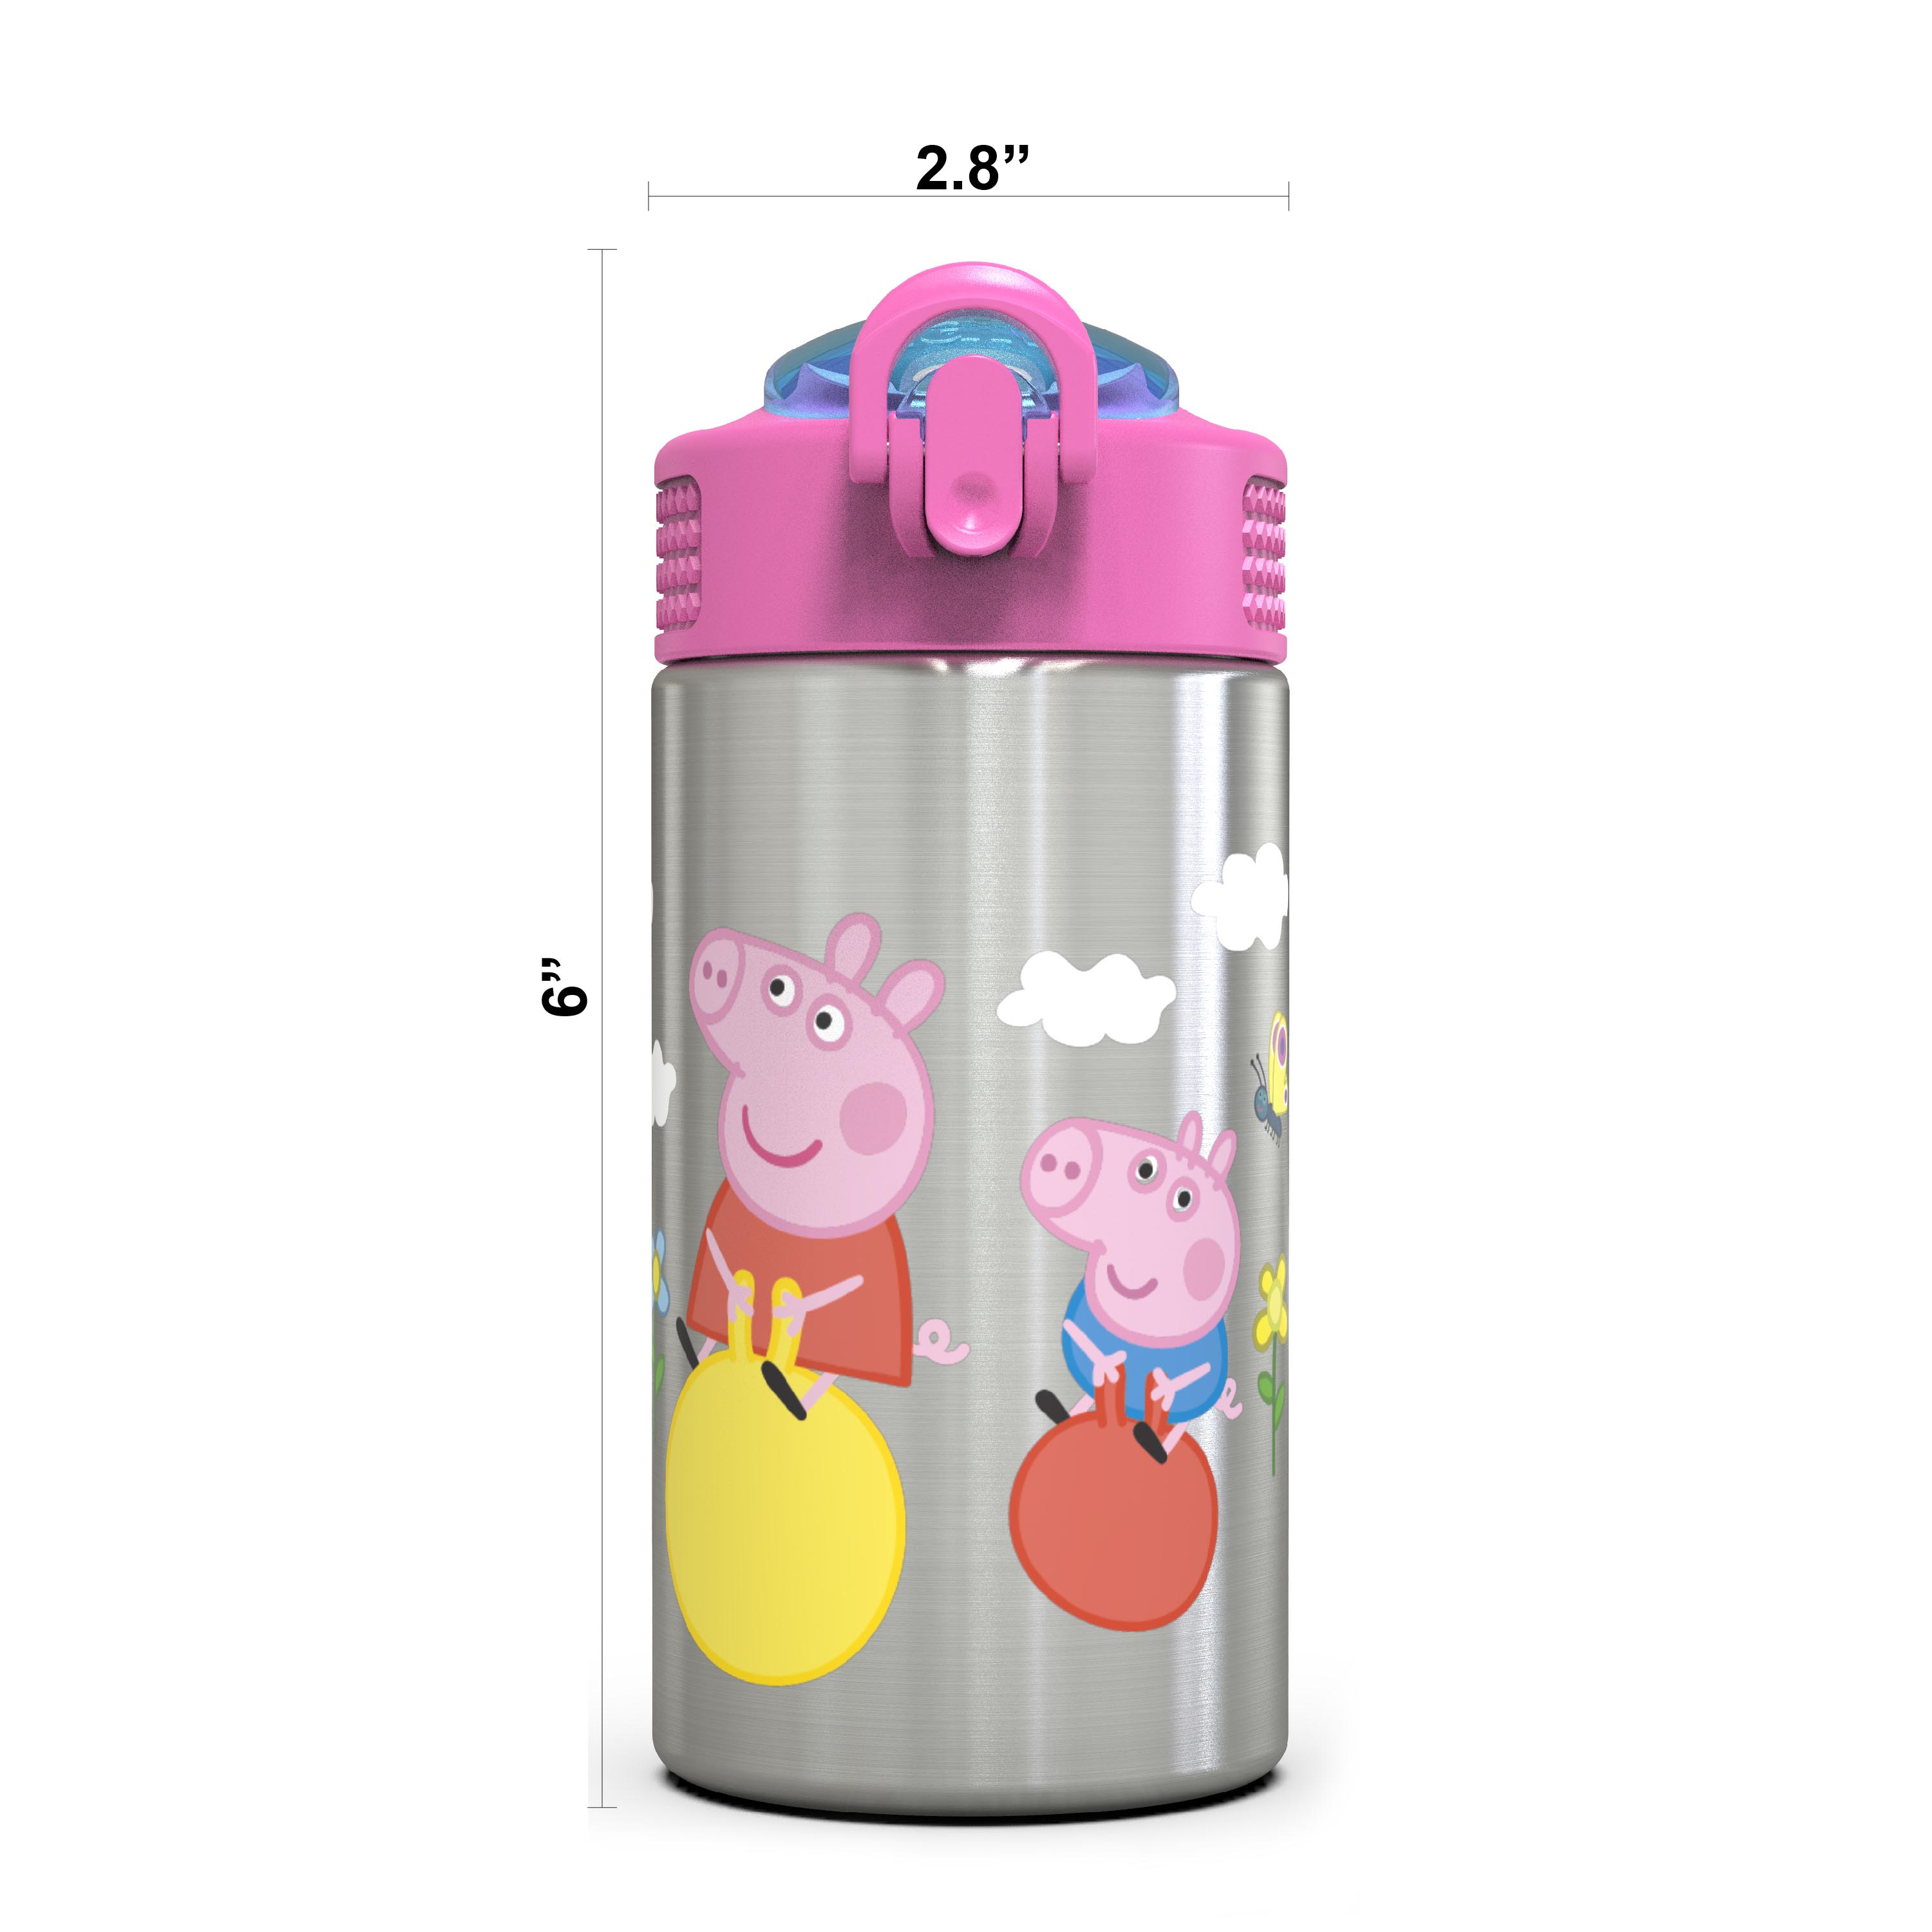 Nick Jr. 15.5 ounce Water Bottle, Peppa Pig slideshow image 5